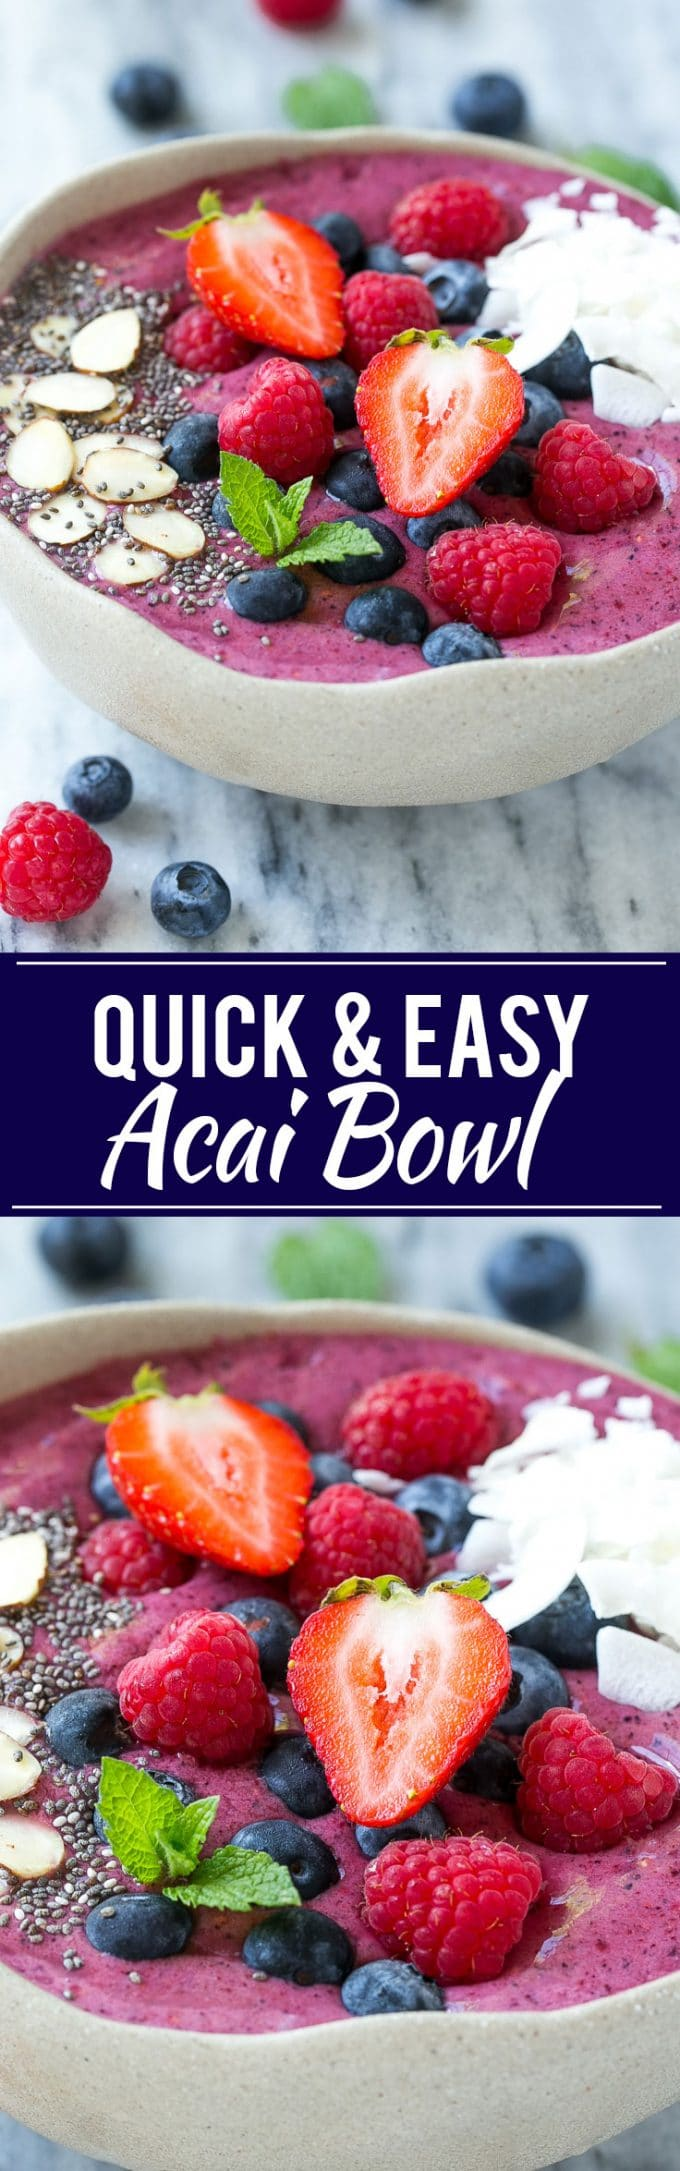 Quick and Easy Acai Bowl Recipe | Quick Acai Bowl Recipe | Easy Acai Bowl Recipe | Best Acai Bowl Recipe